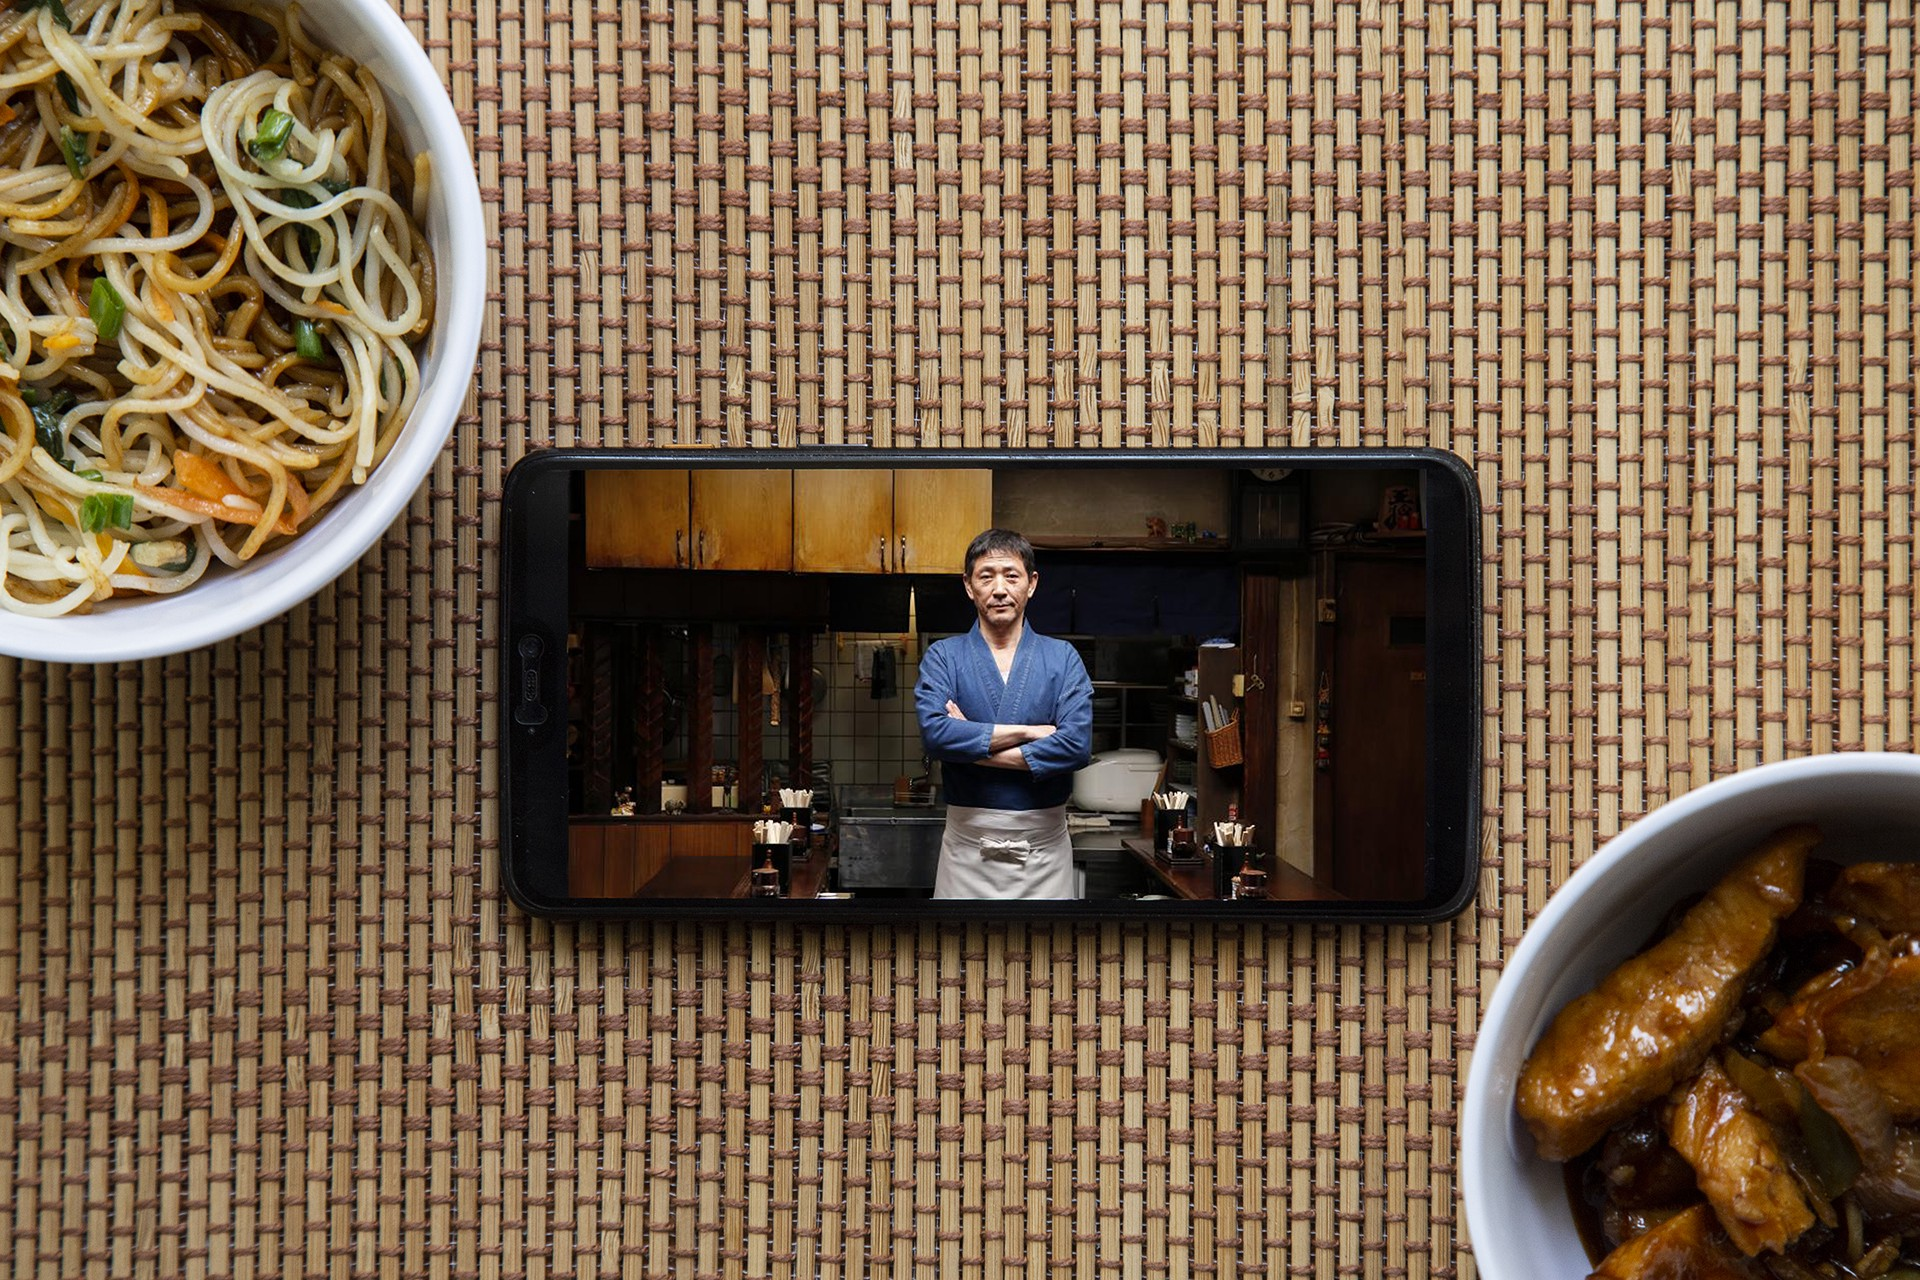 Tv Show We Are Crushing On Midnight Diner Tokyo Stories By Stayabode Stayabode Medium